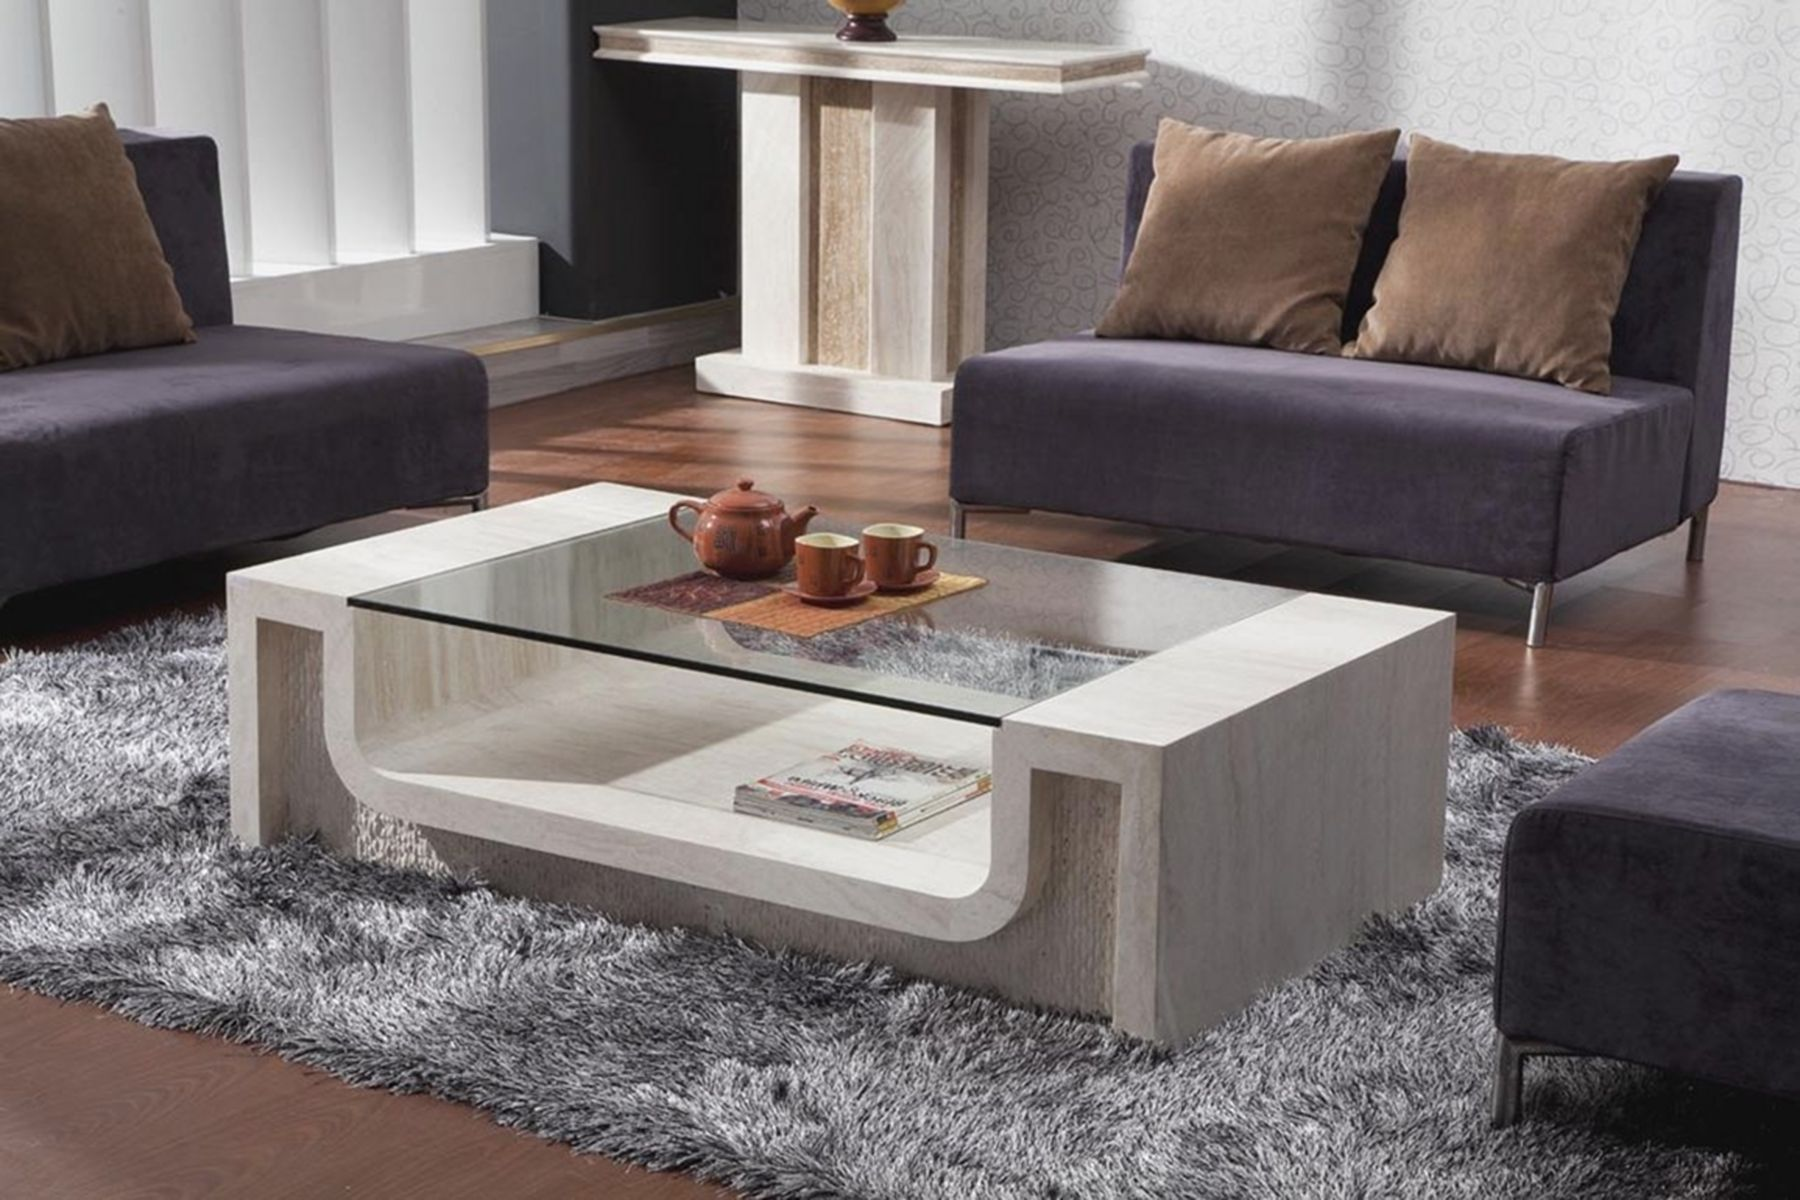 15 The Best Table Design Ideas For You To Imitate Your Living Room Tea Table Design Center Table Living Room Centre Table Living Room [ 1200 x 1800 Pixel ]